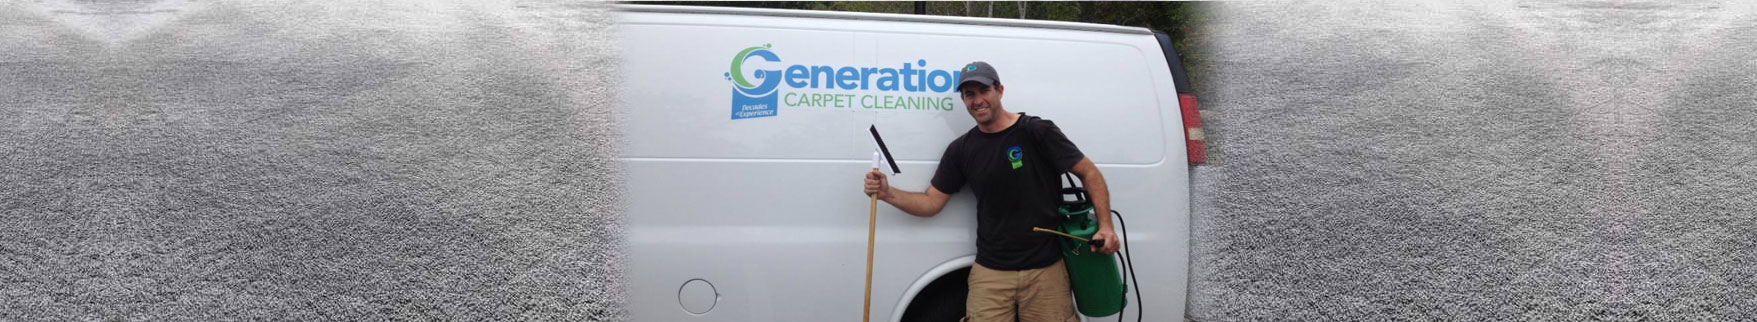 Generations Carpet Cleaning - Owner Mike Rowe